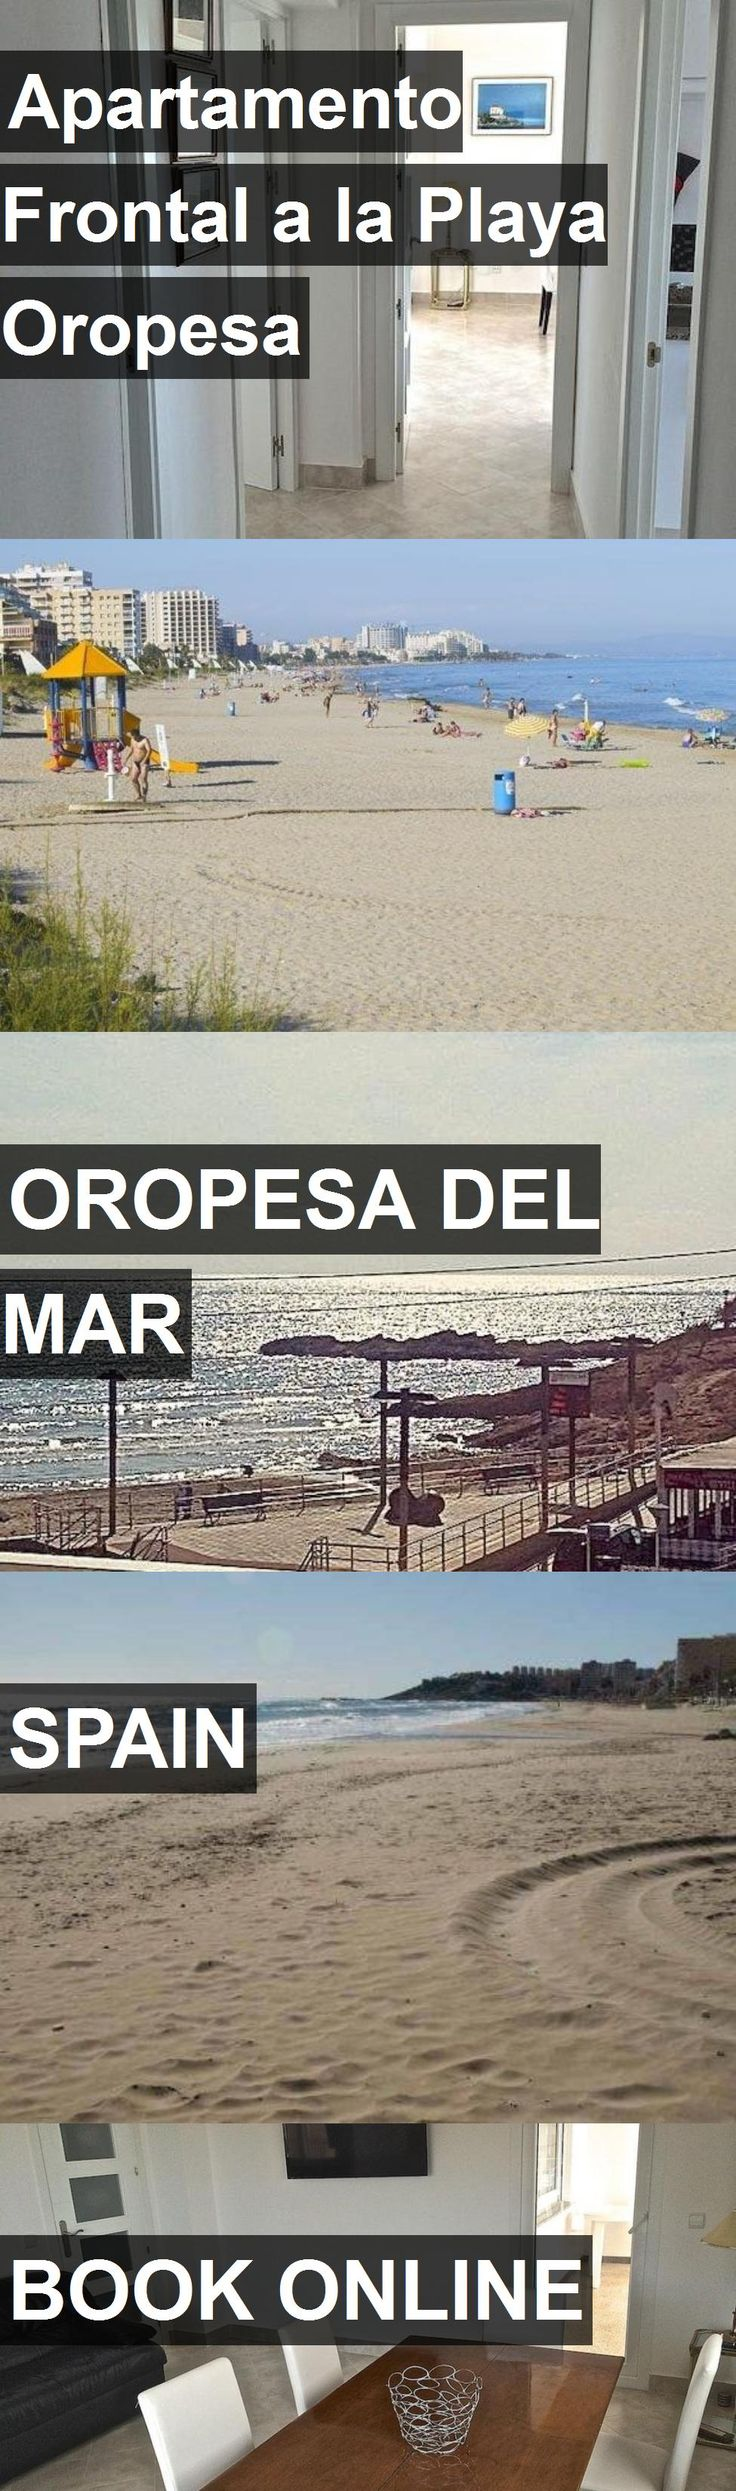 Hotel Apartamento Frontal a la Playa Oropesa in Oropesa del Mar, Spain. For more information, photos, reviews and best prices please follow the link. #Spain #OropesadelMar #travel #vacation #hotel